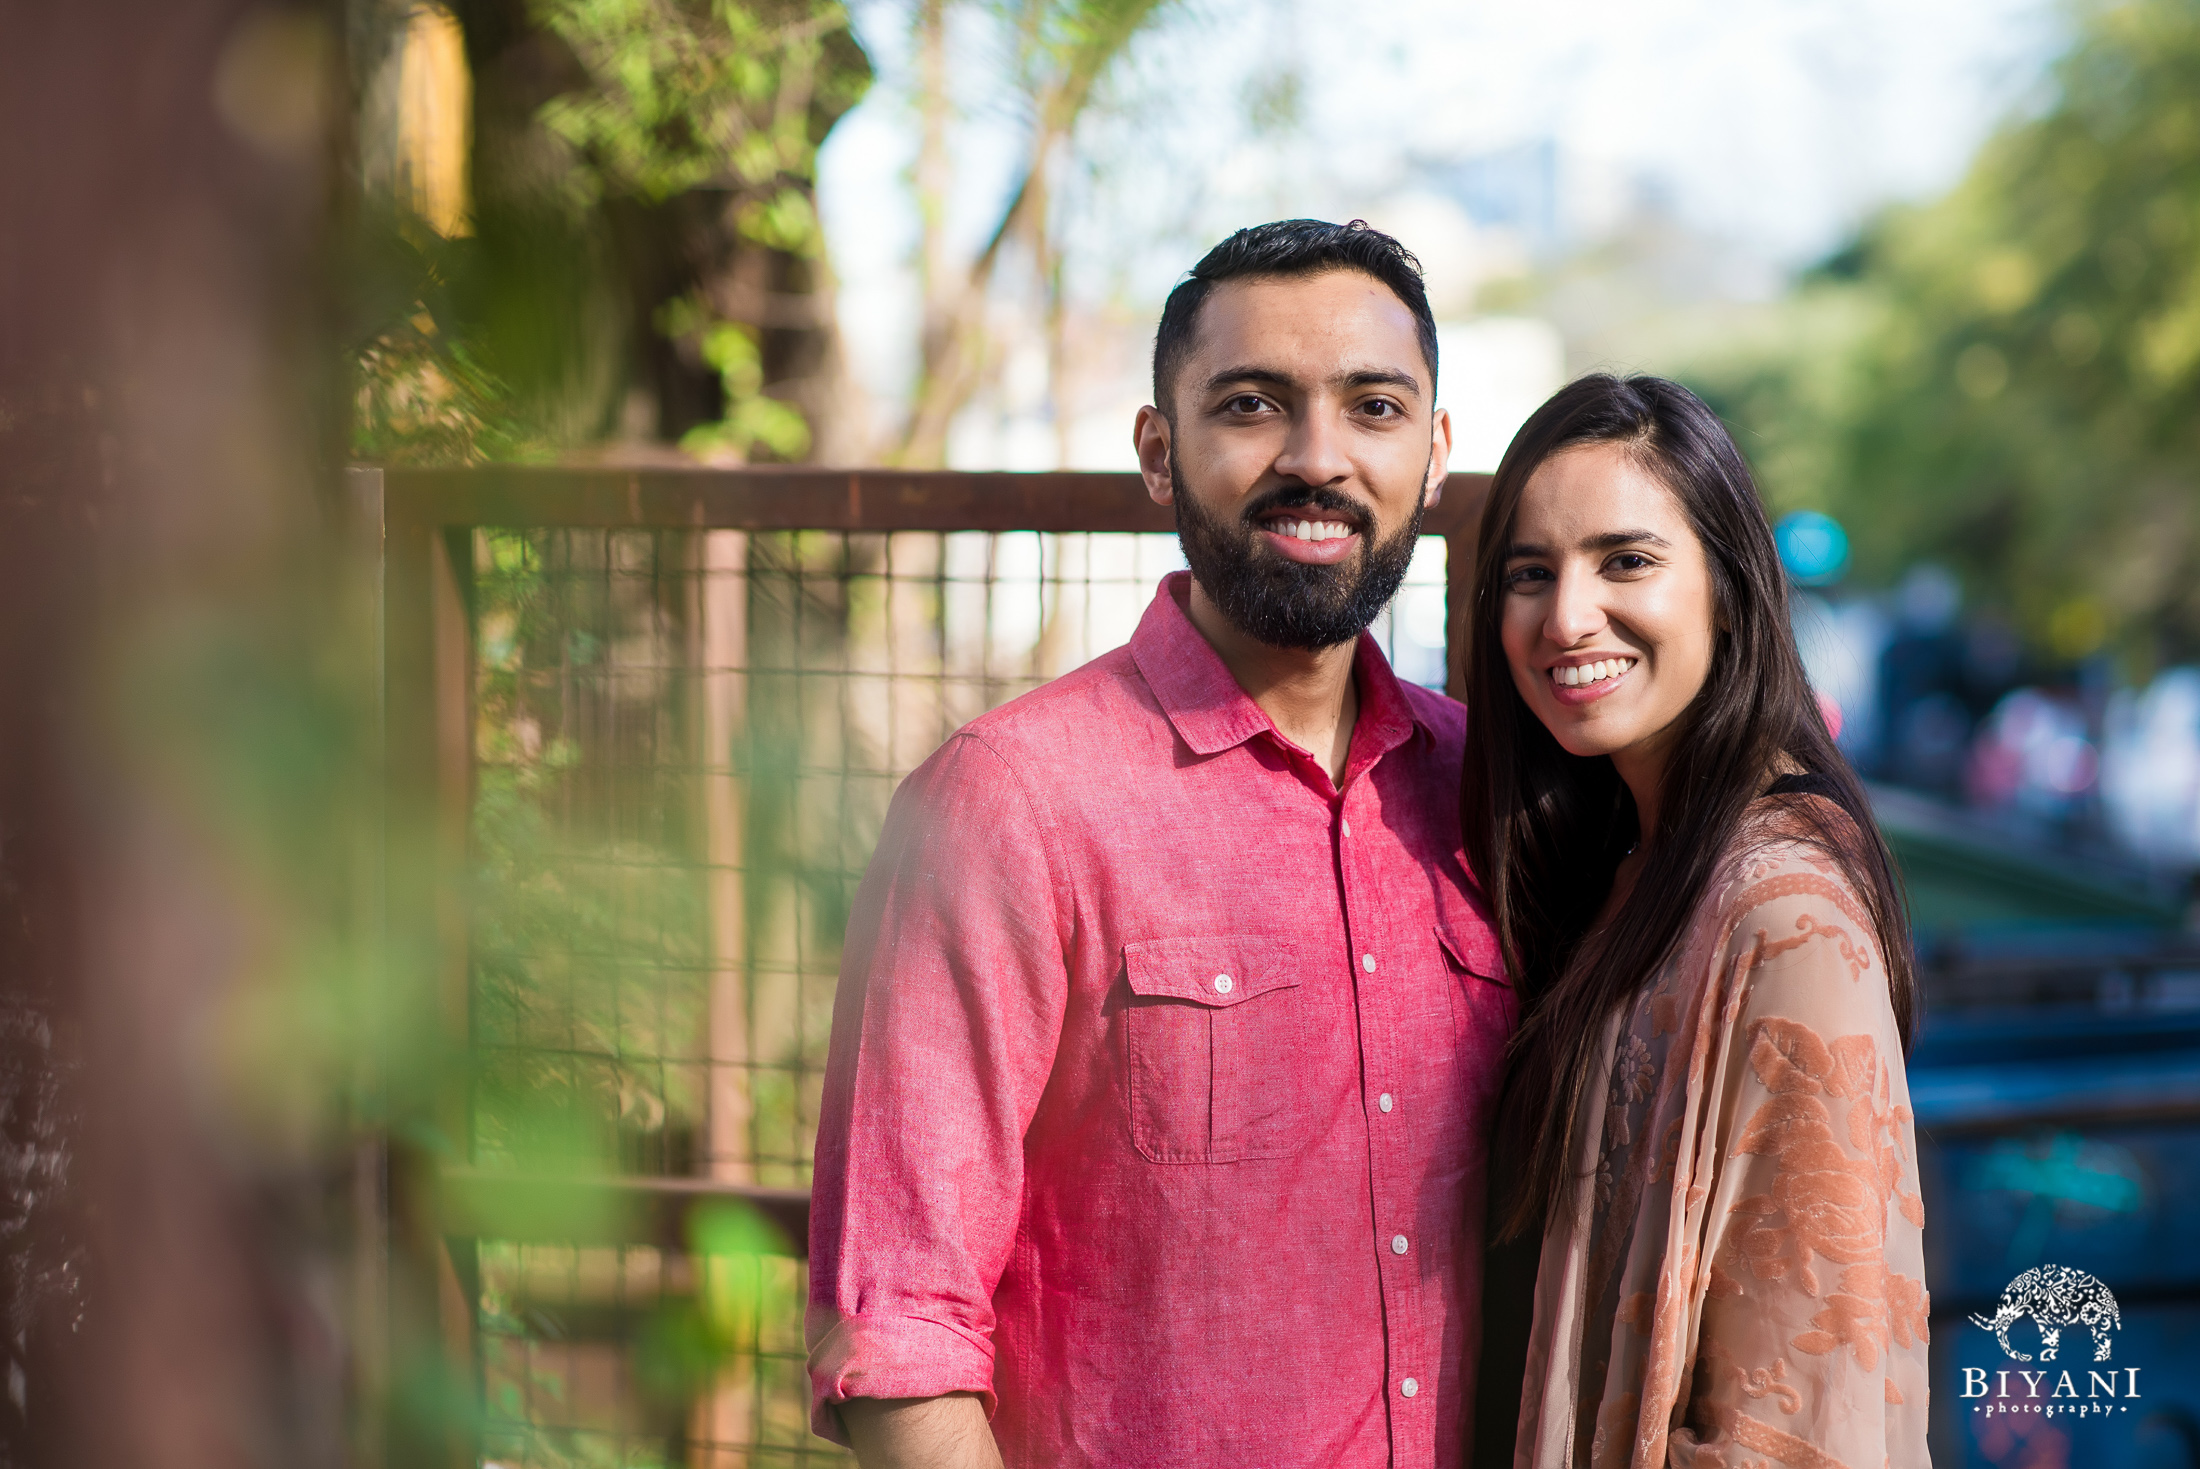 An Indian couple posing on the streets of South Congress Austin, TX for their engagement photo shoot